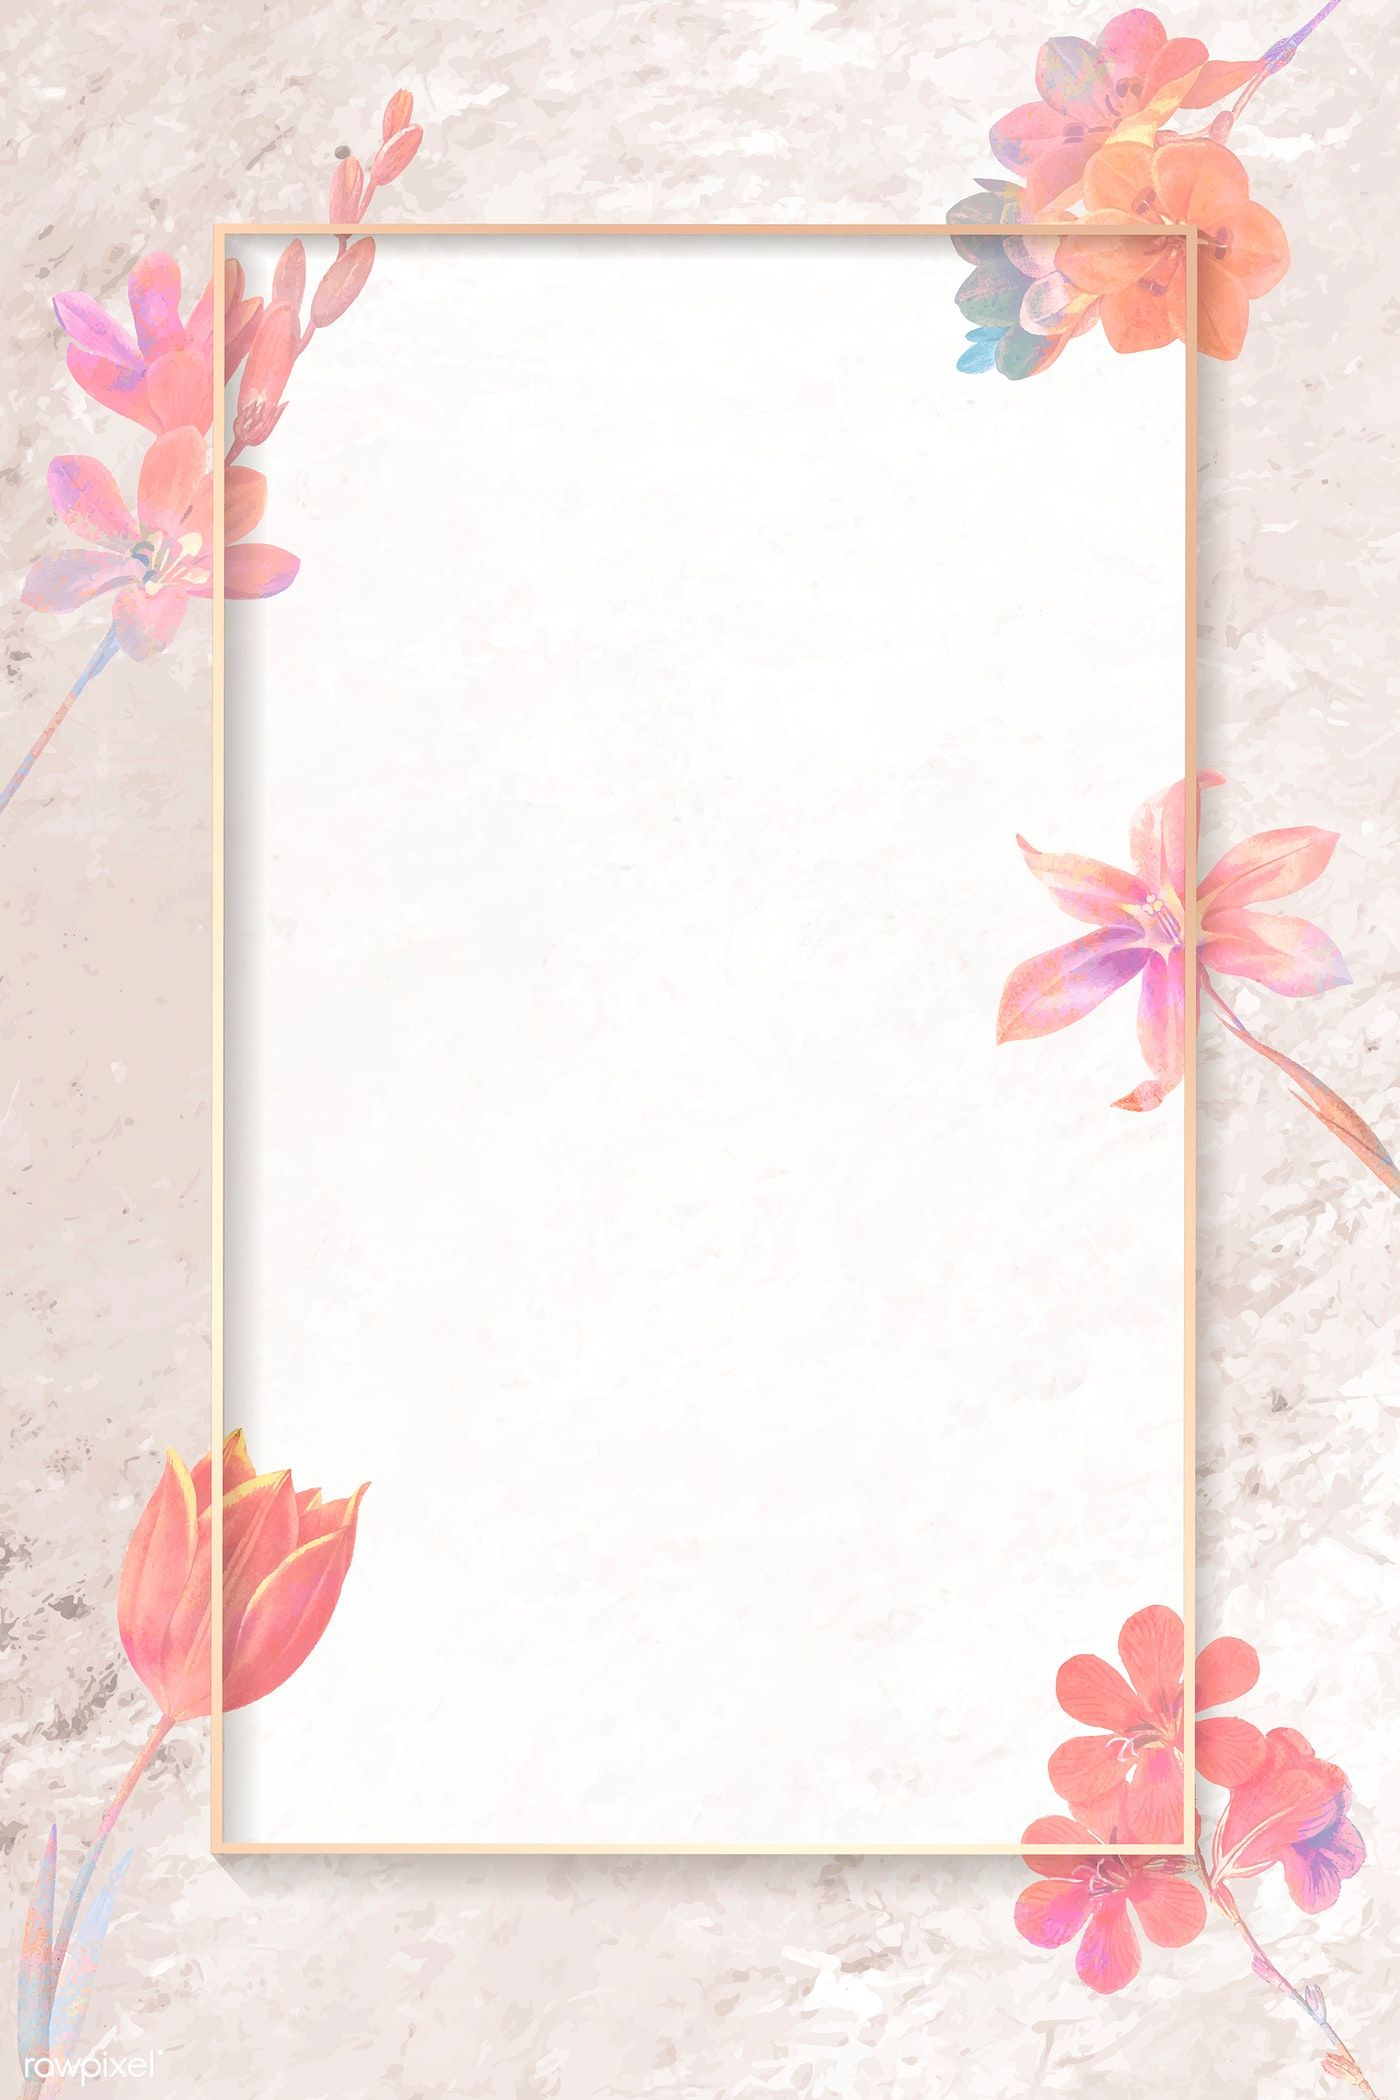 Download premium vector of Blank pink floral rectangle